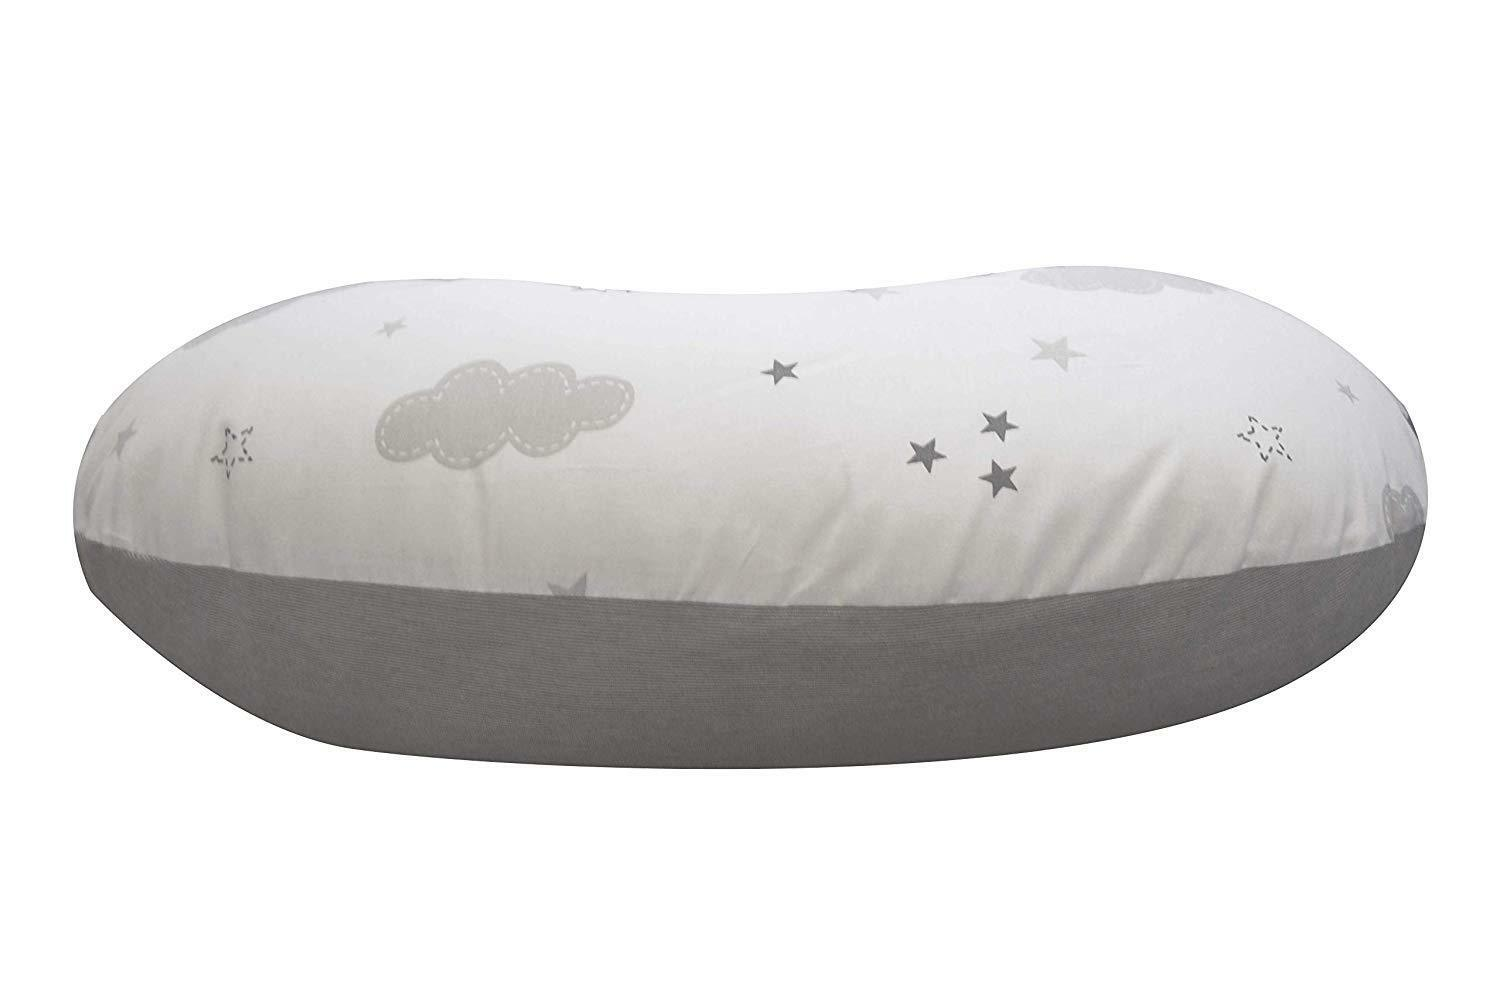 Cuddles Collection 4 in1 Nursing Pregnancy Pillow - Sweet Dreams Stars & Clouds